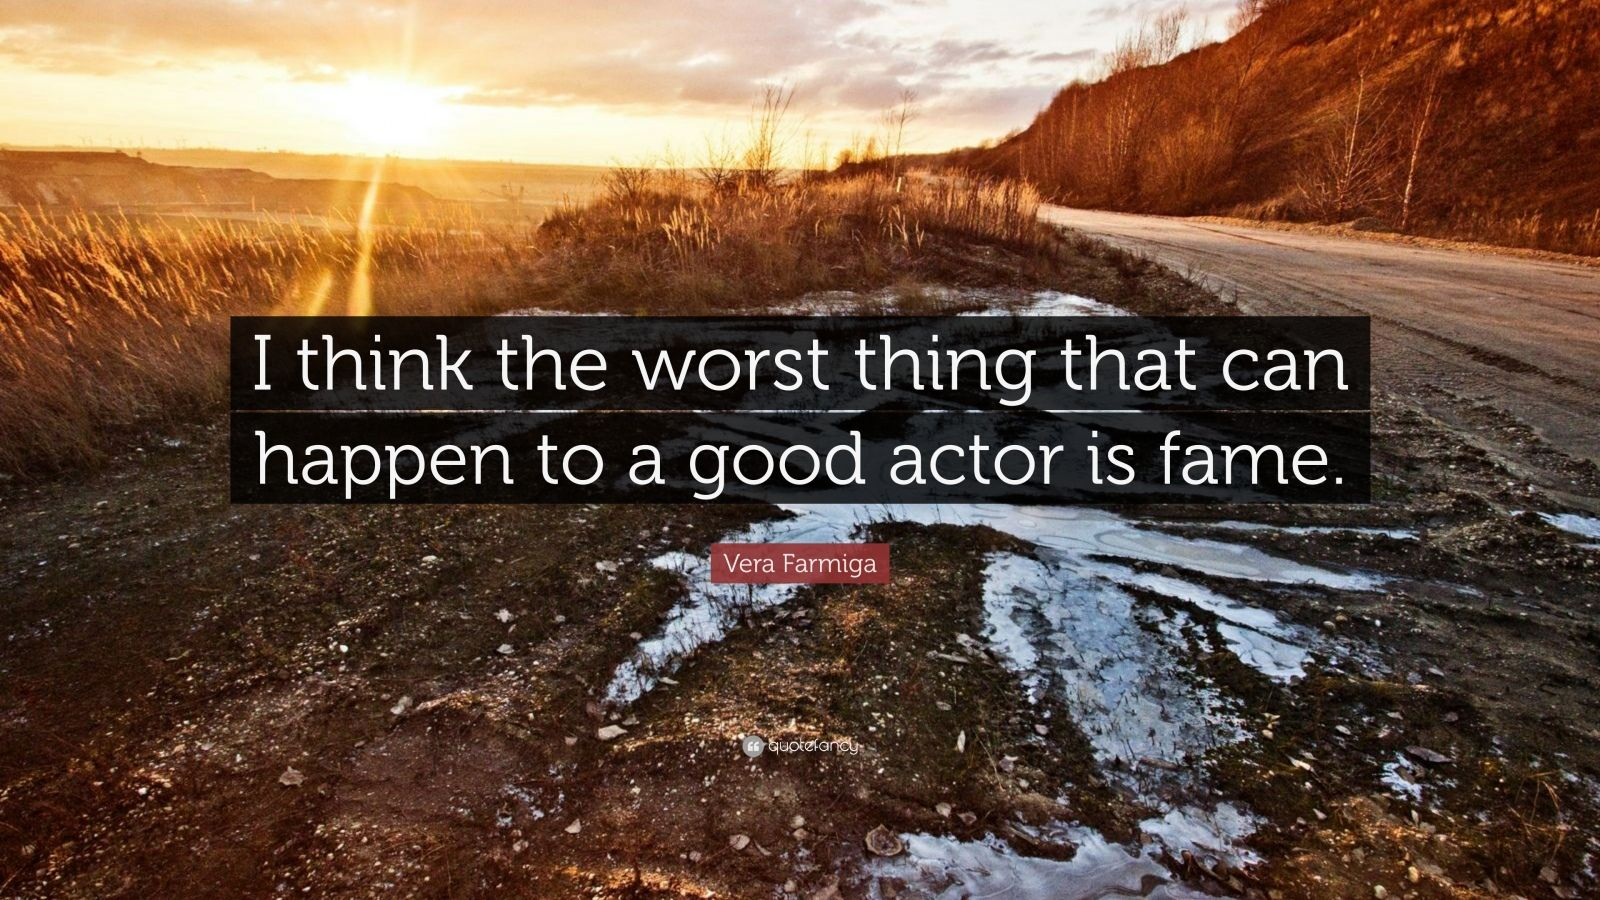 Vera Farmiga Quote I Think The Worst Thing That Can Happen To A Good Actor Is Fame 7 Wallpapers Quotefancy